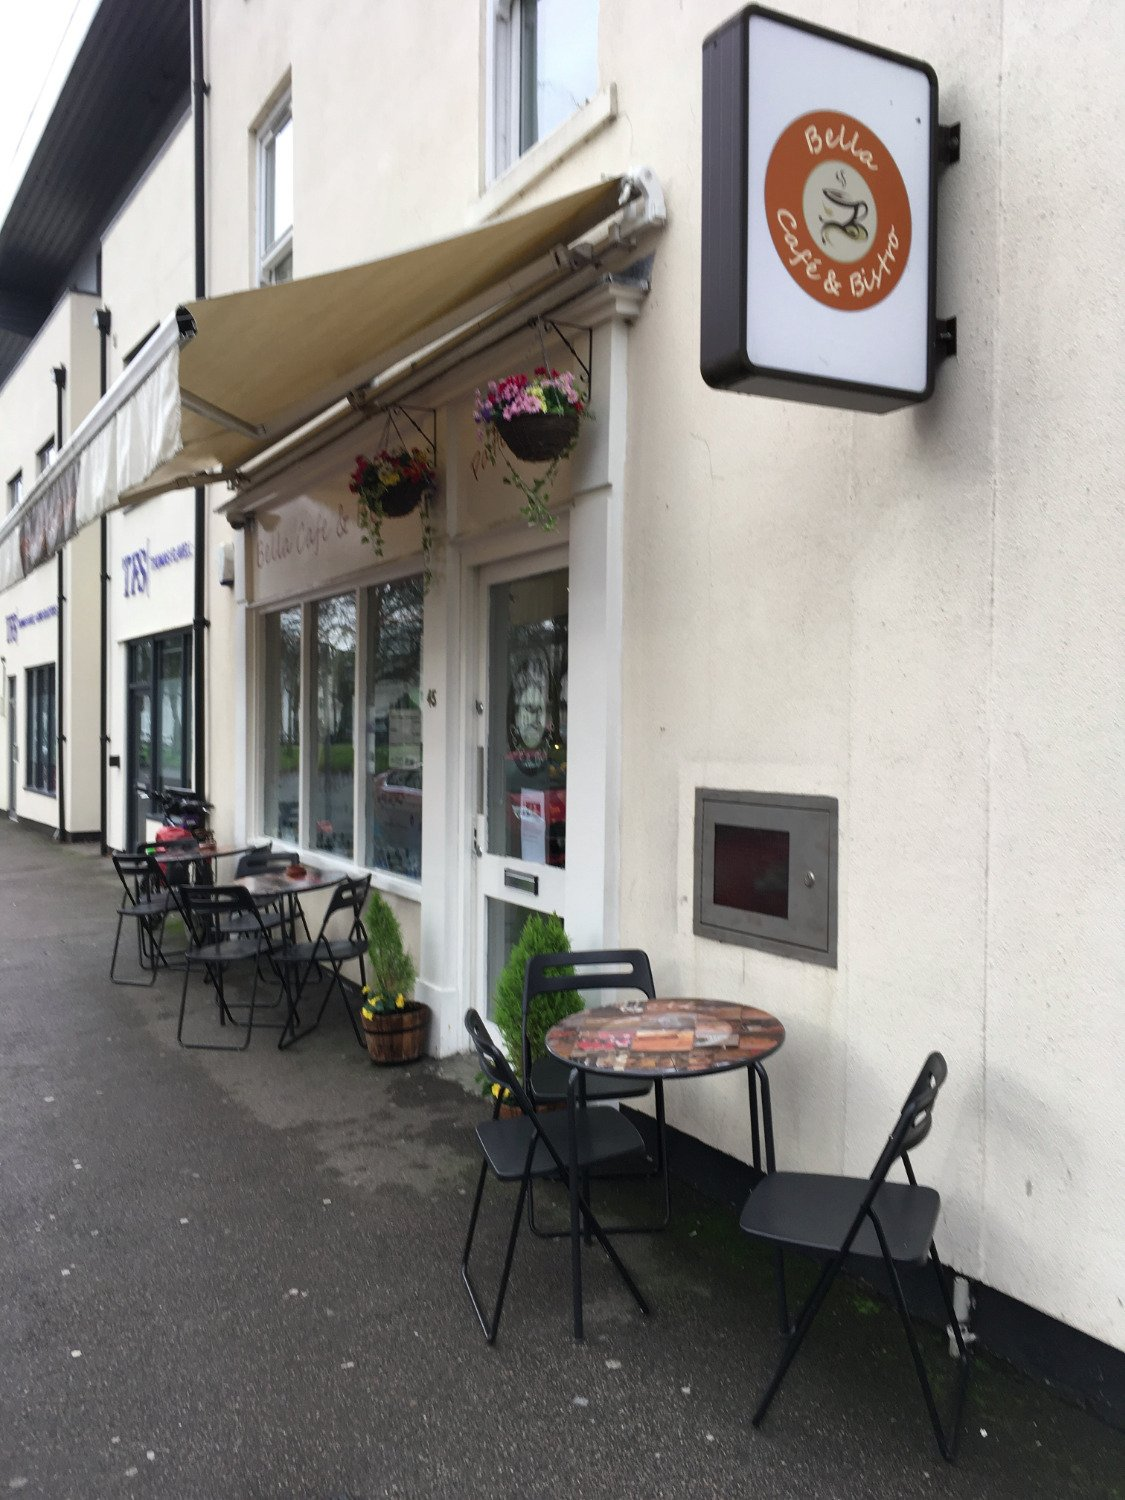 Bella cafe leamington spa restaurant reviews phone for 30 east salon reviews